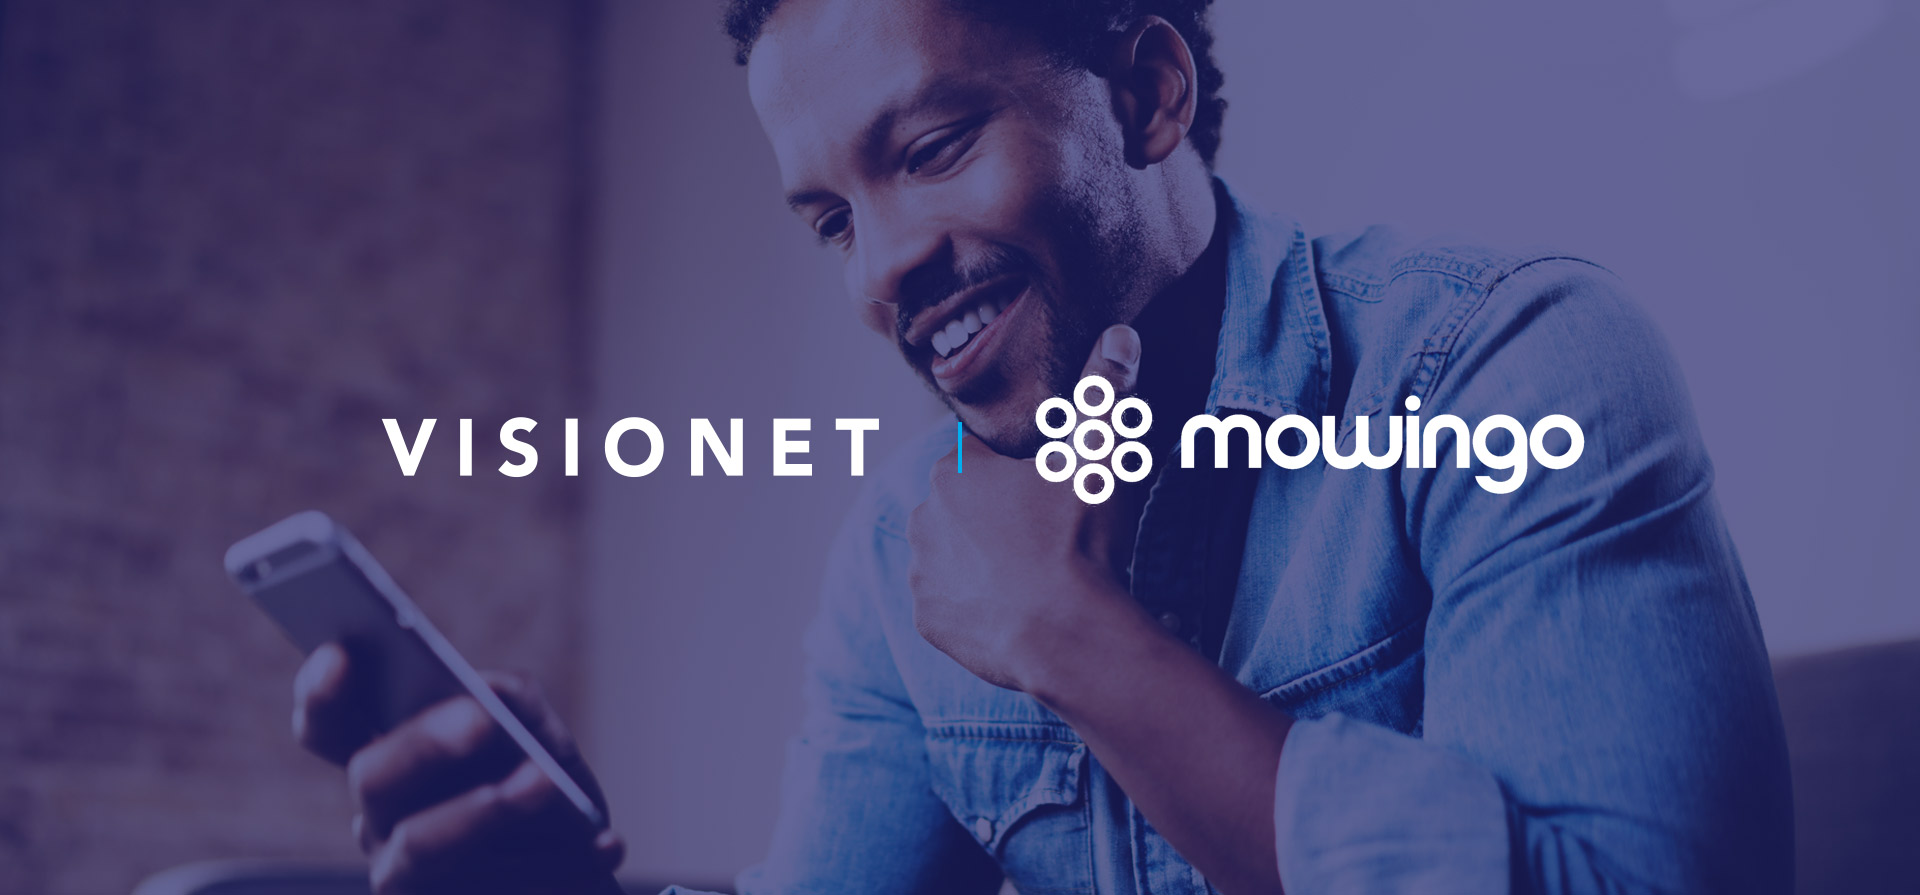 Visionet and Mowingo partner to bring next generation mobile engagement to retail